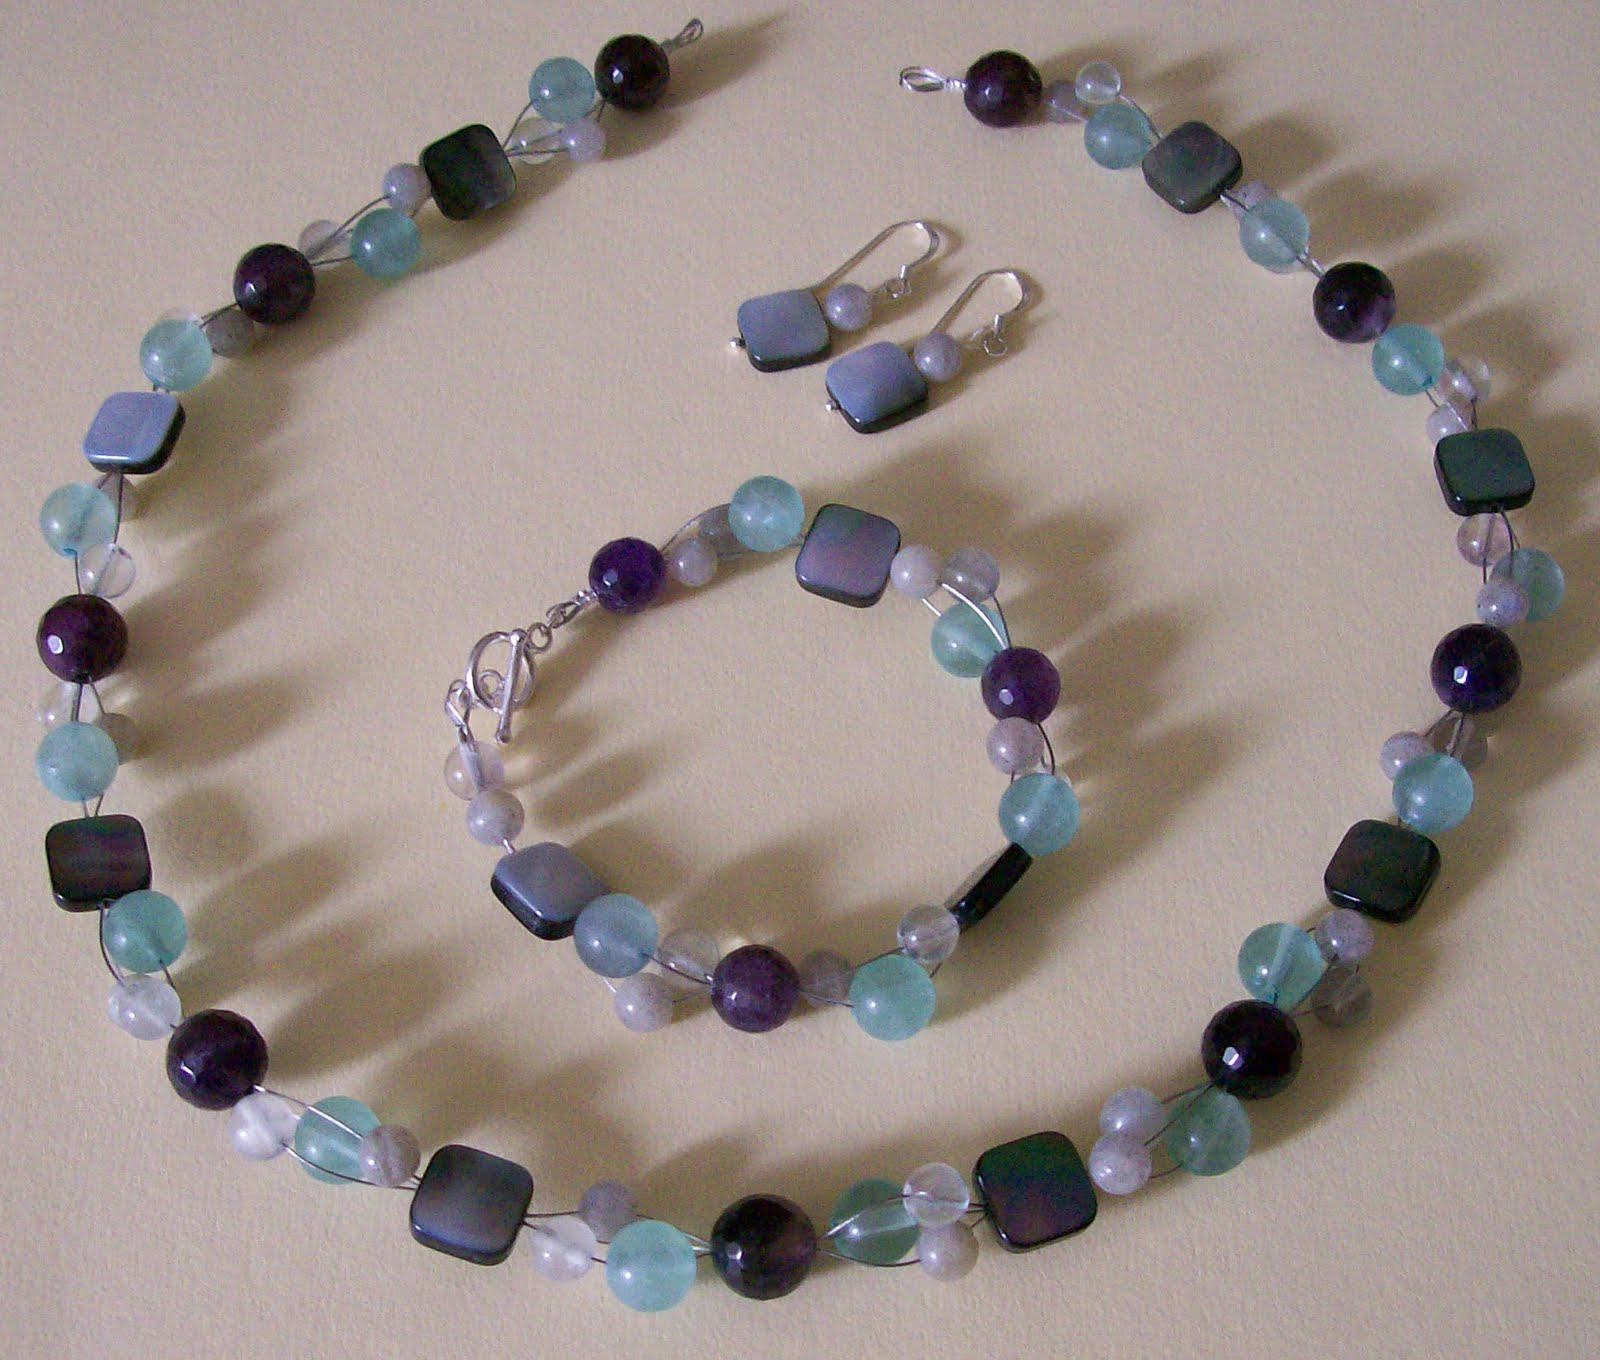 Feltabulous: My First Jewellery Making Project